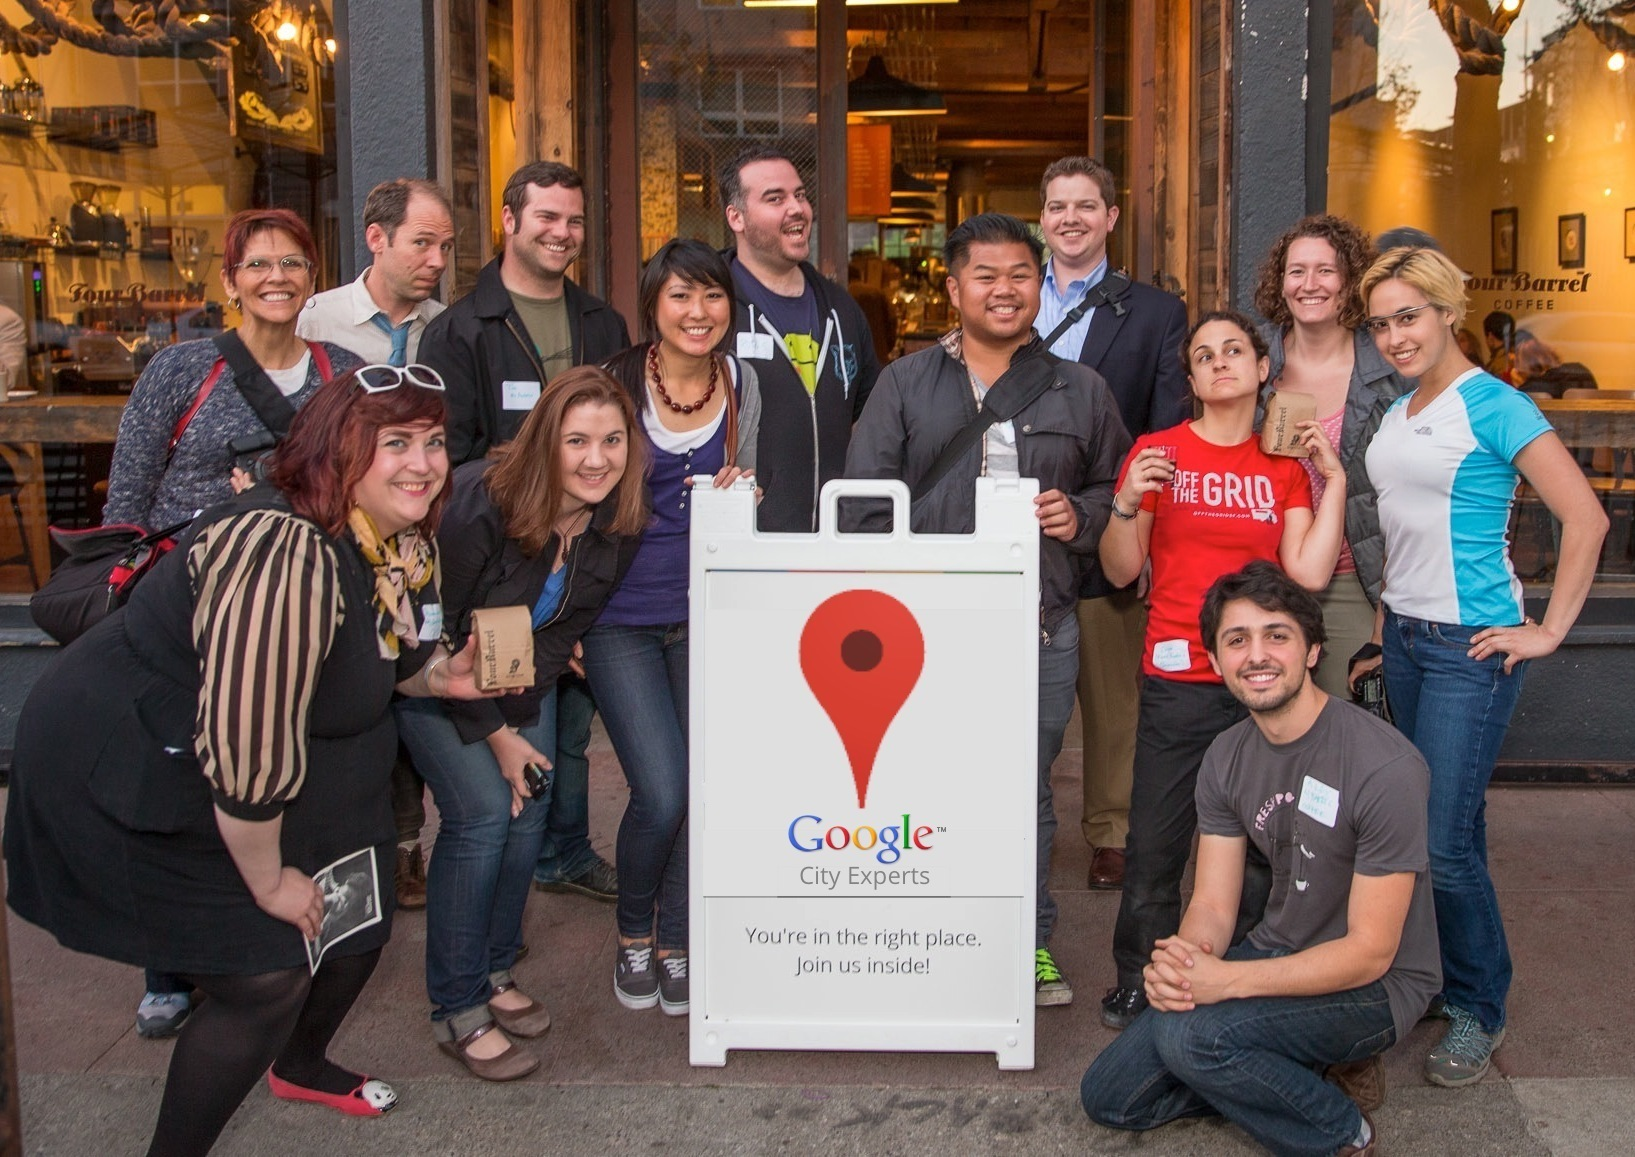 Google Launches City Expert Program